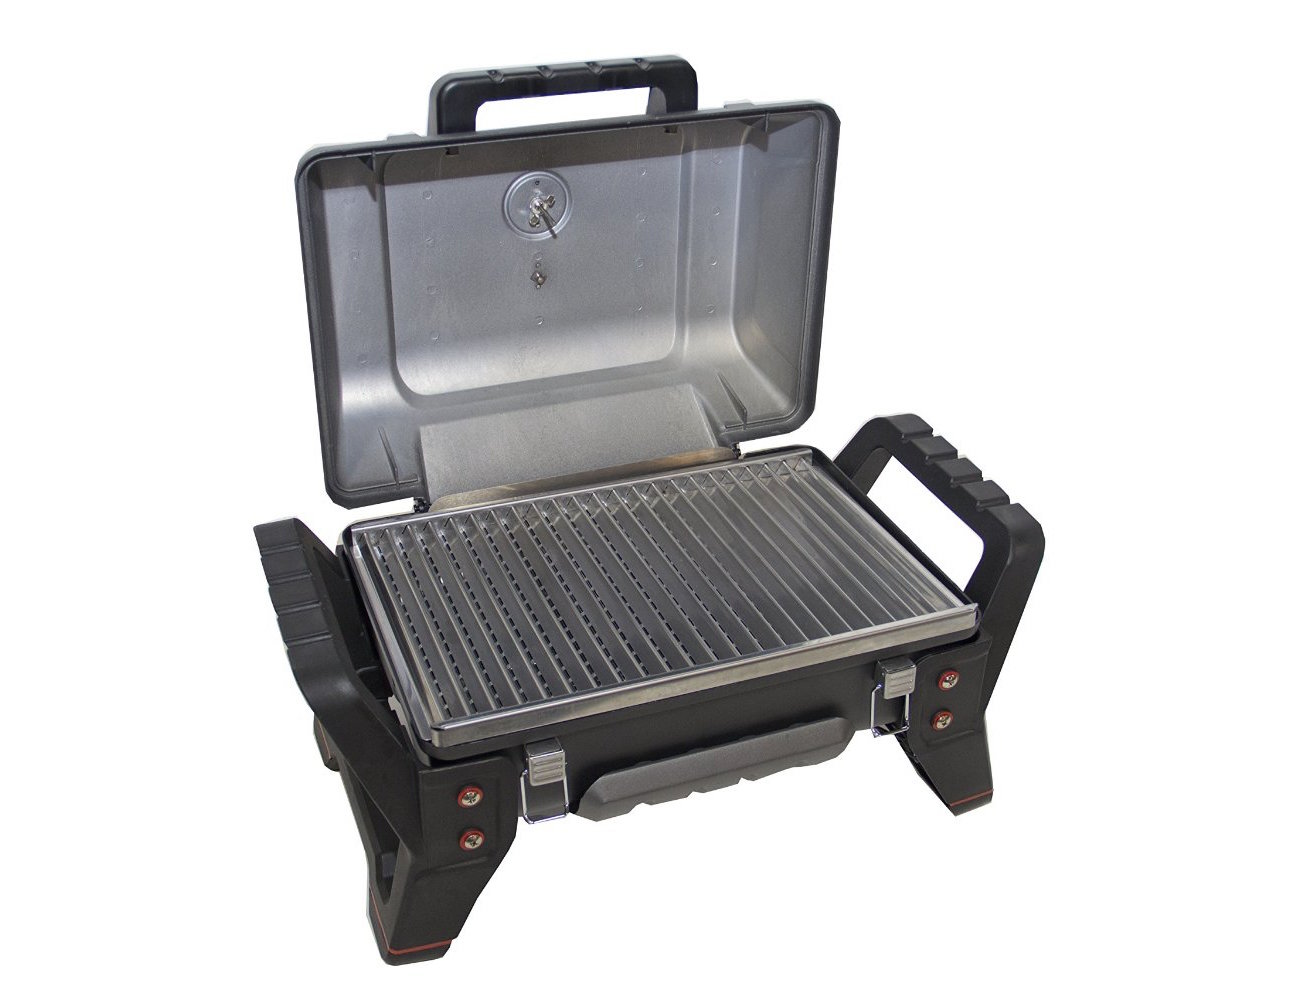 char-broil-grill2go-x200-04